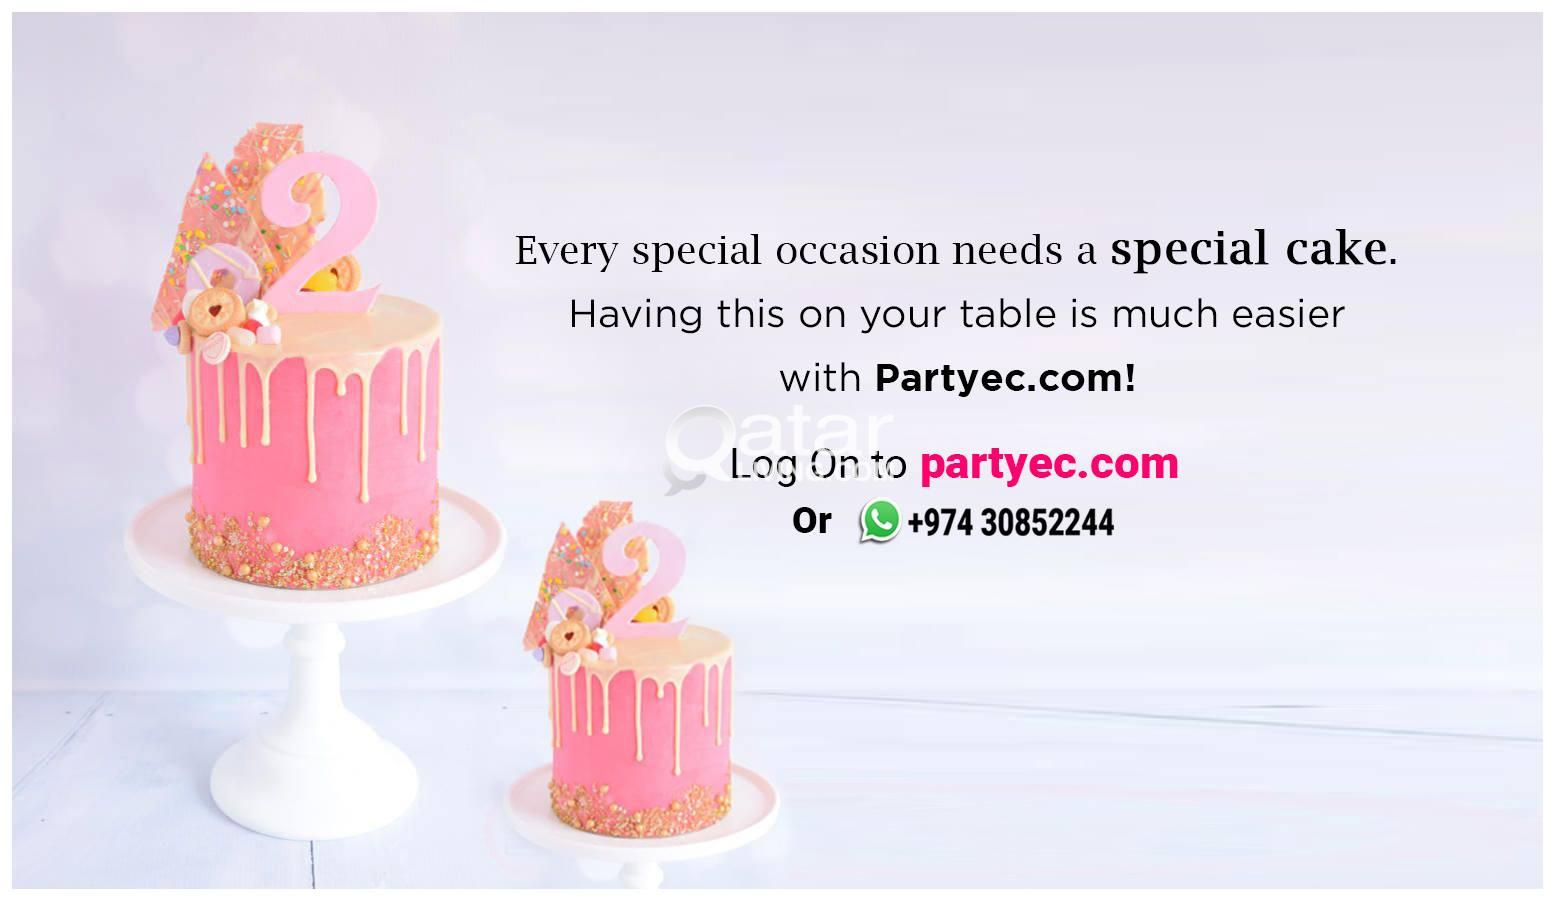 Order Special Cakes Online in Qatar Qatar Living